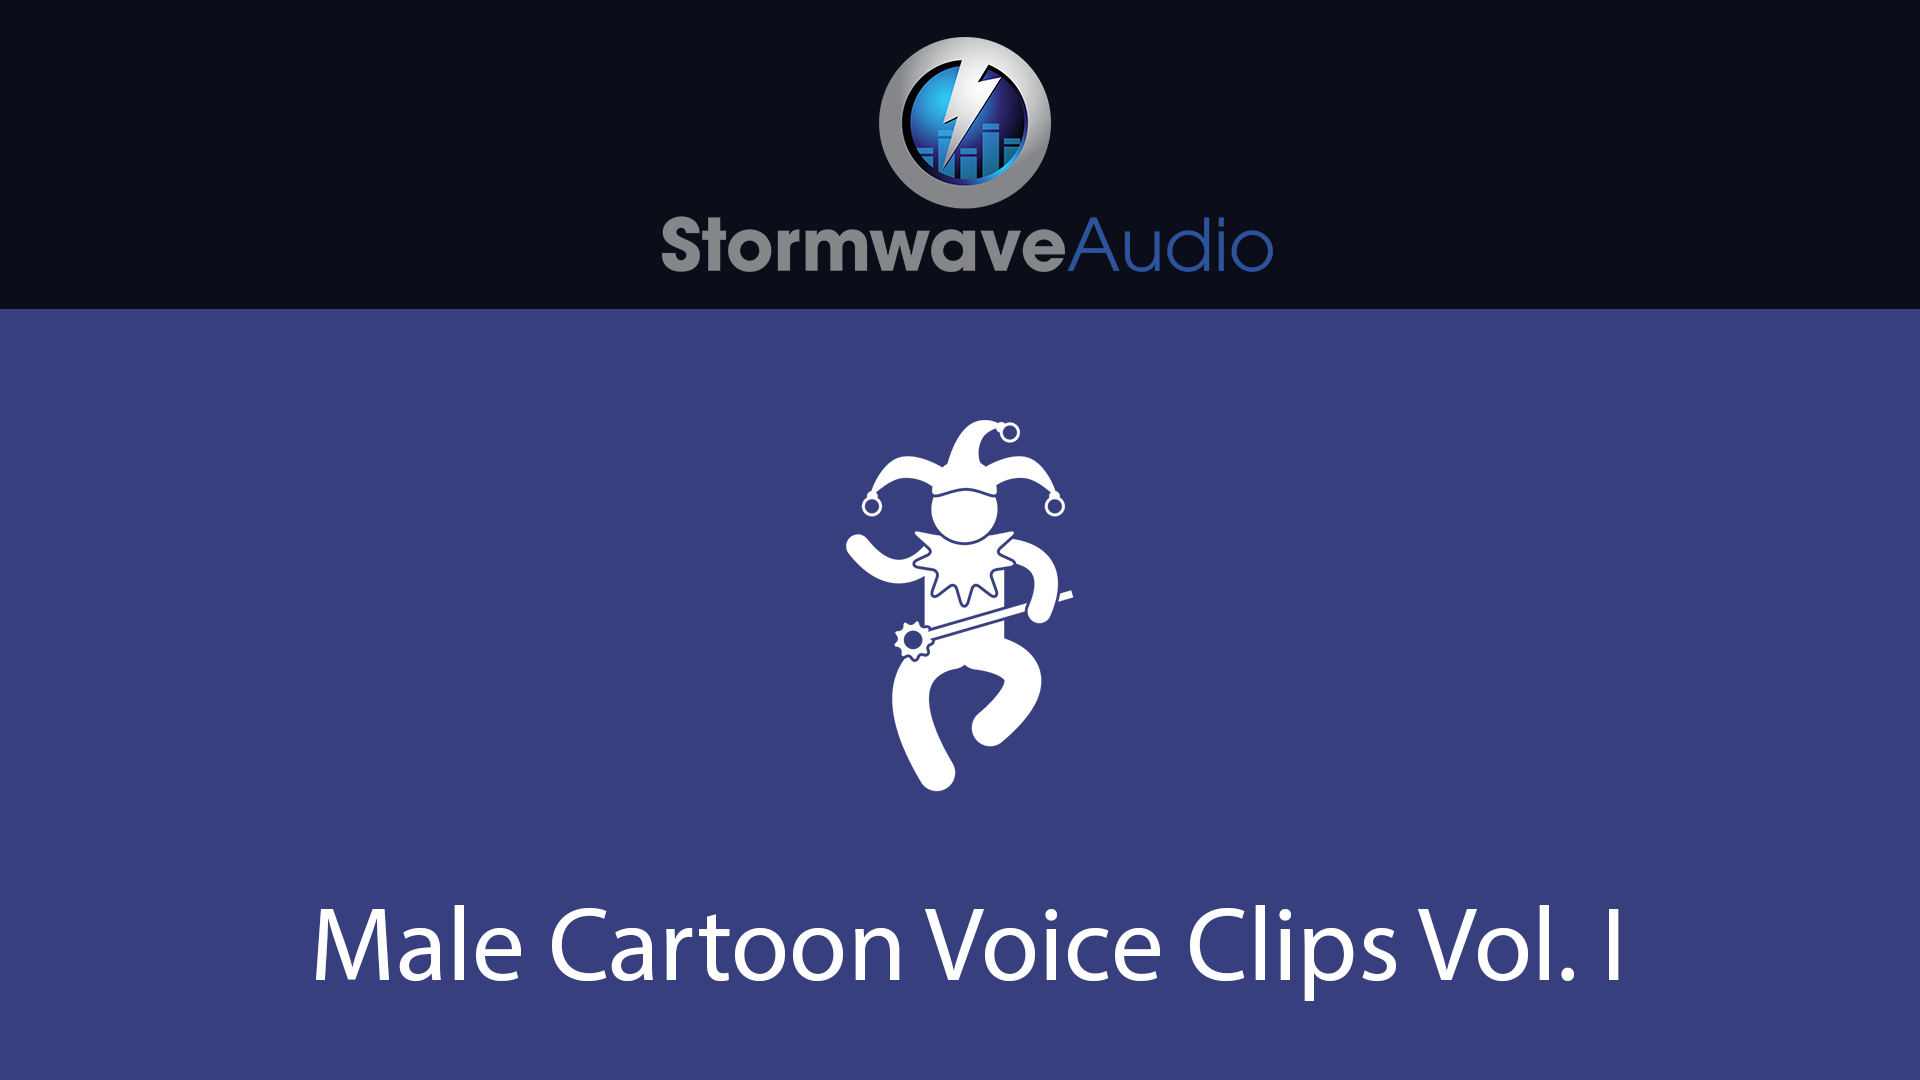 Male Cartoon Voice Clips Vol  I by Stormwave Audio in Sound